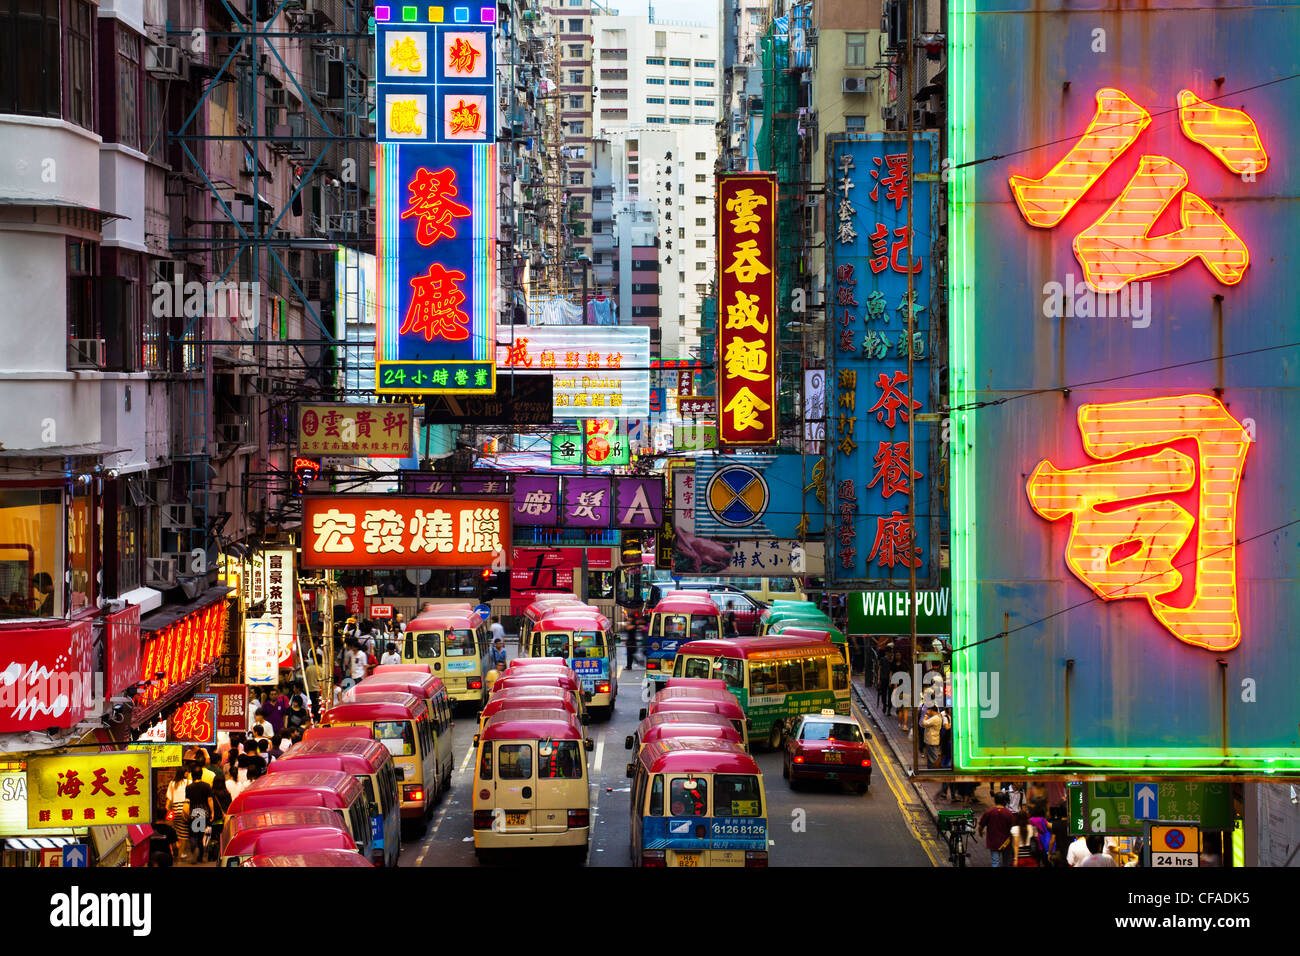 Street scene, Mini bus station and Neon lights of Mong Kok, Kowloon, Hong Kong, China - Stock Image